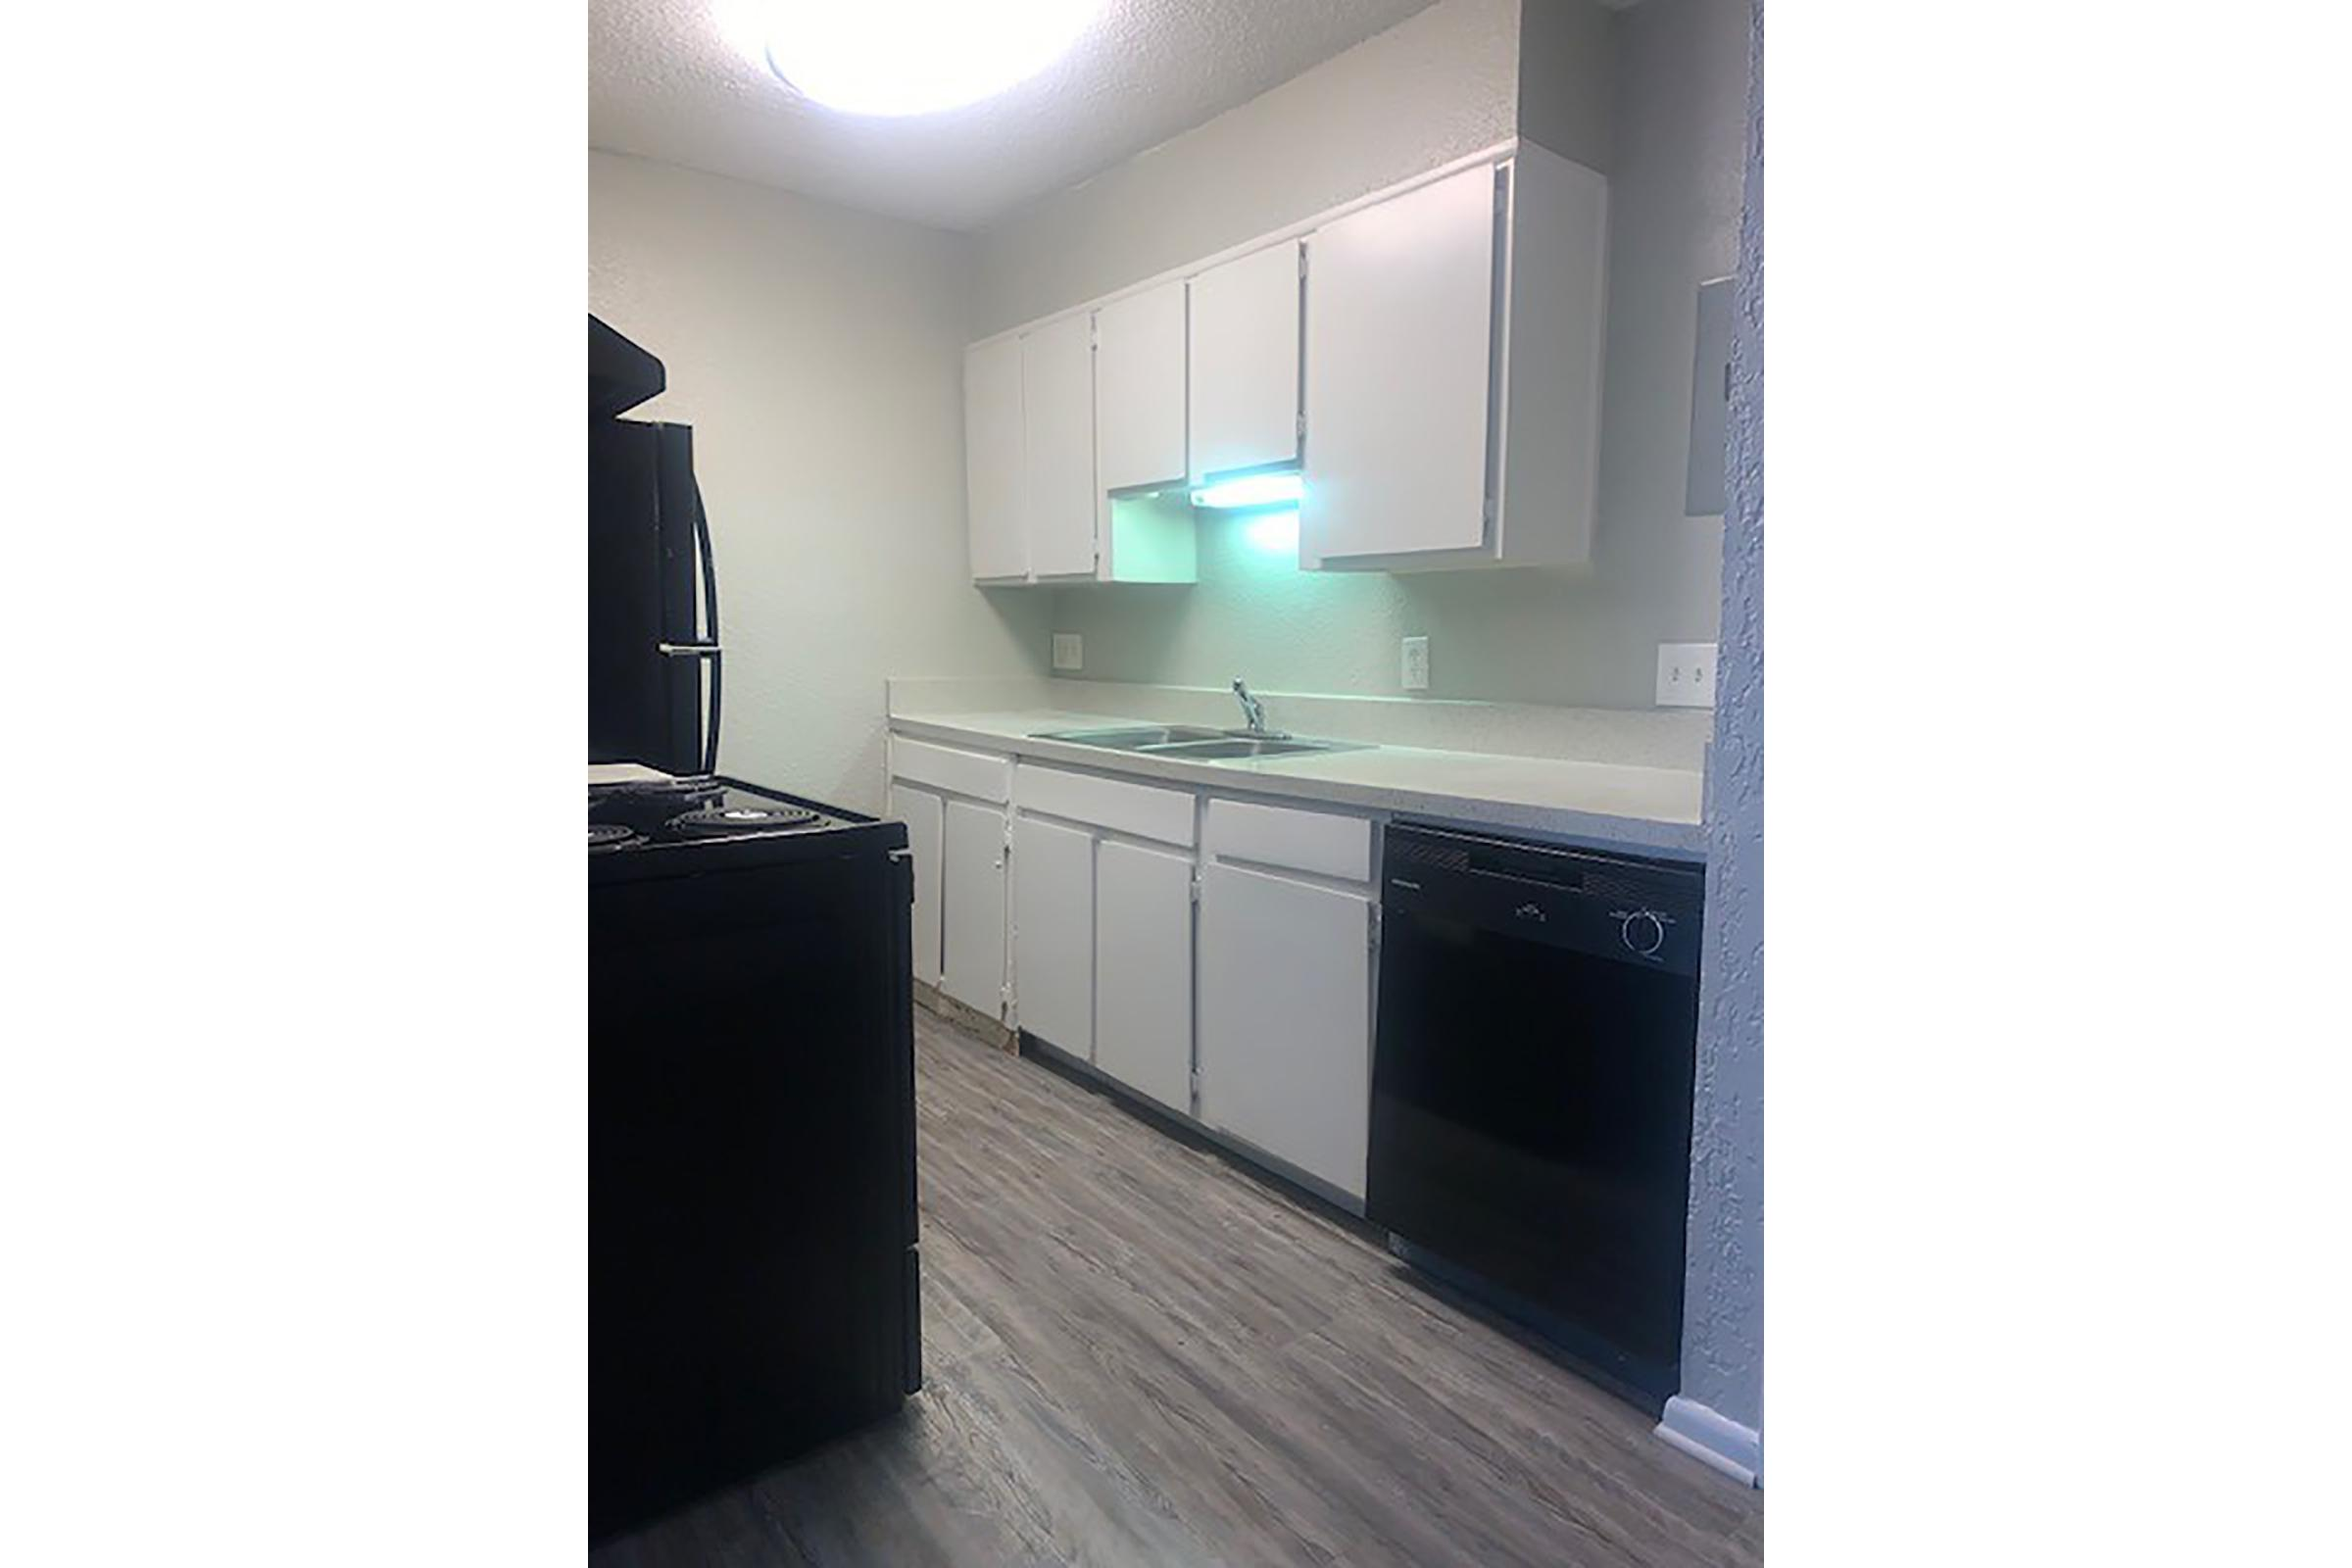 a kitchen with a black background